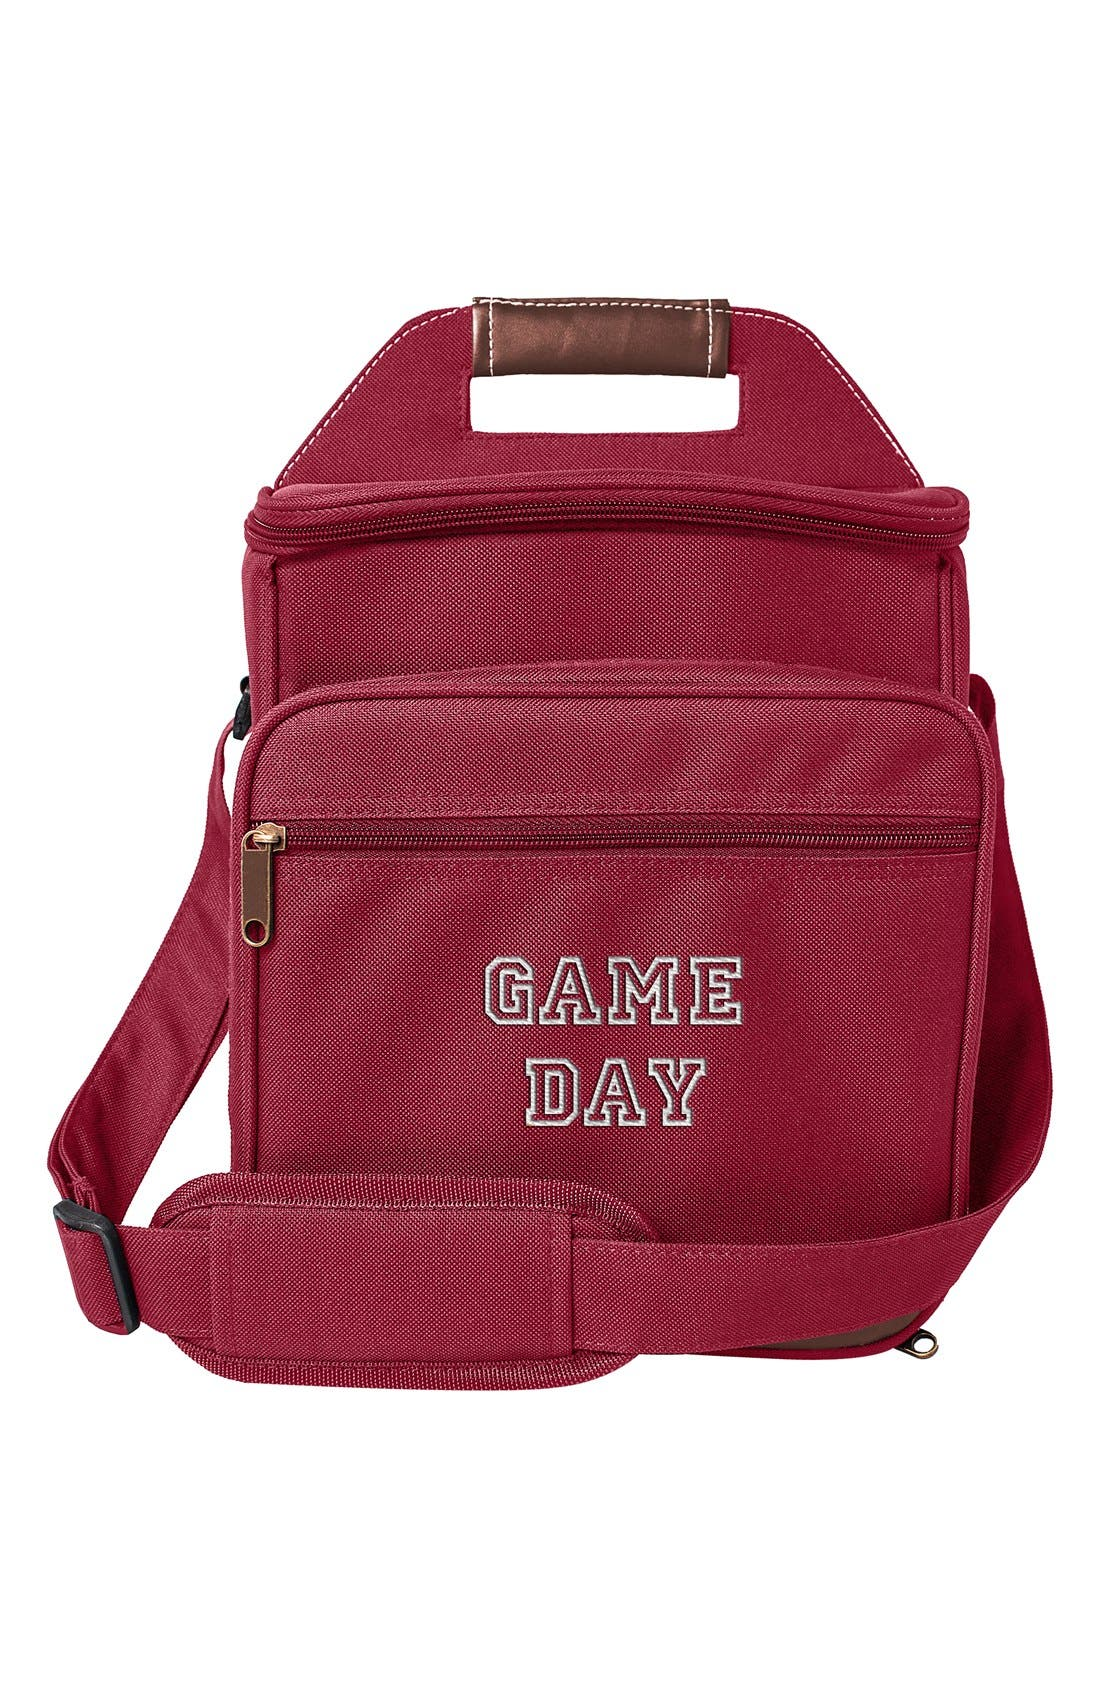 'Game Day' Picnic Cooler Set,                         Main,                         color, 600